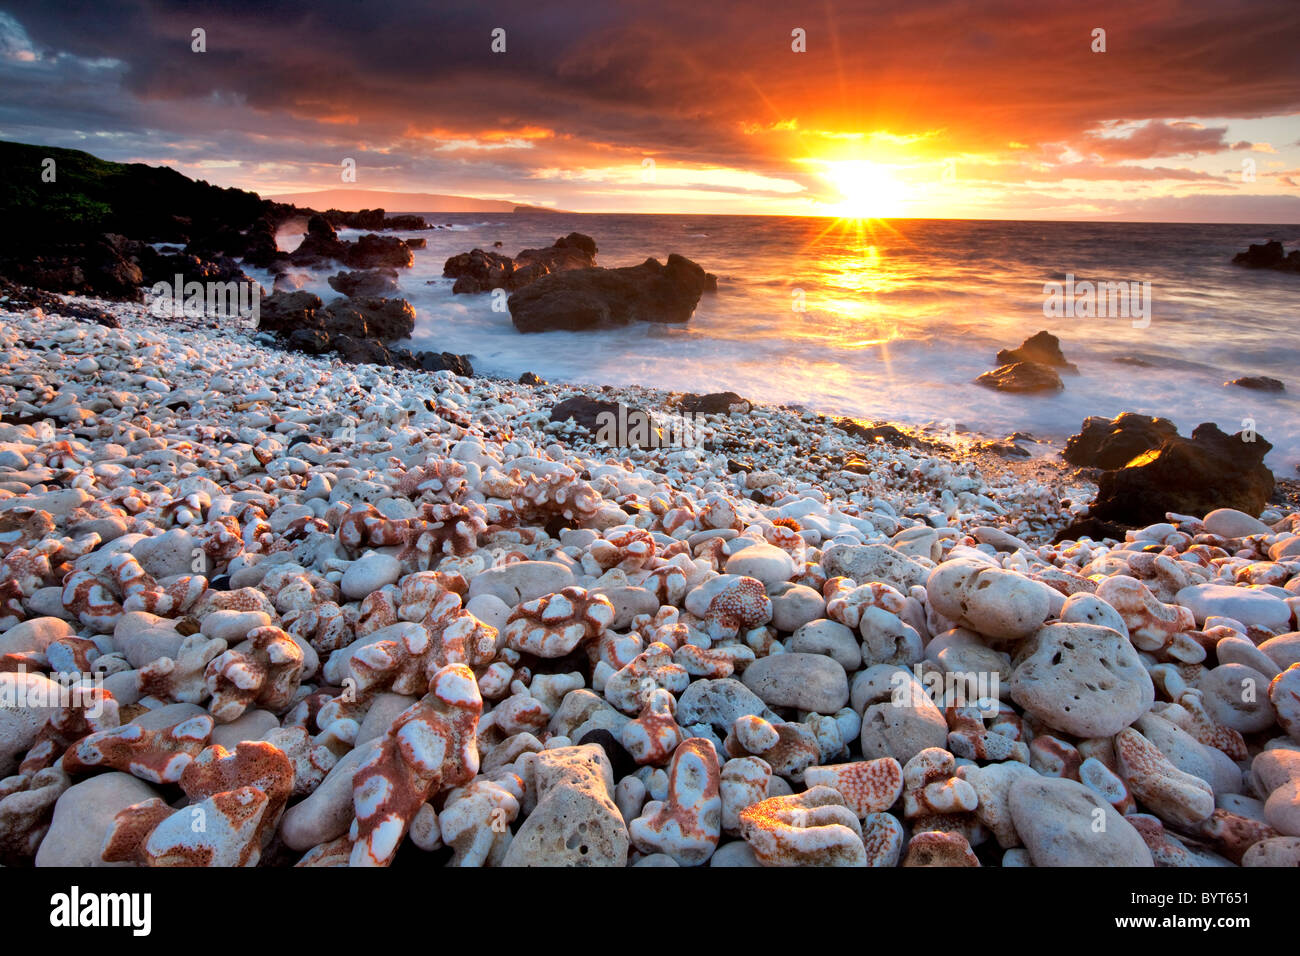 Sunset on beach with coral. Maui, Hawaii. Stock Photo